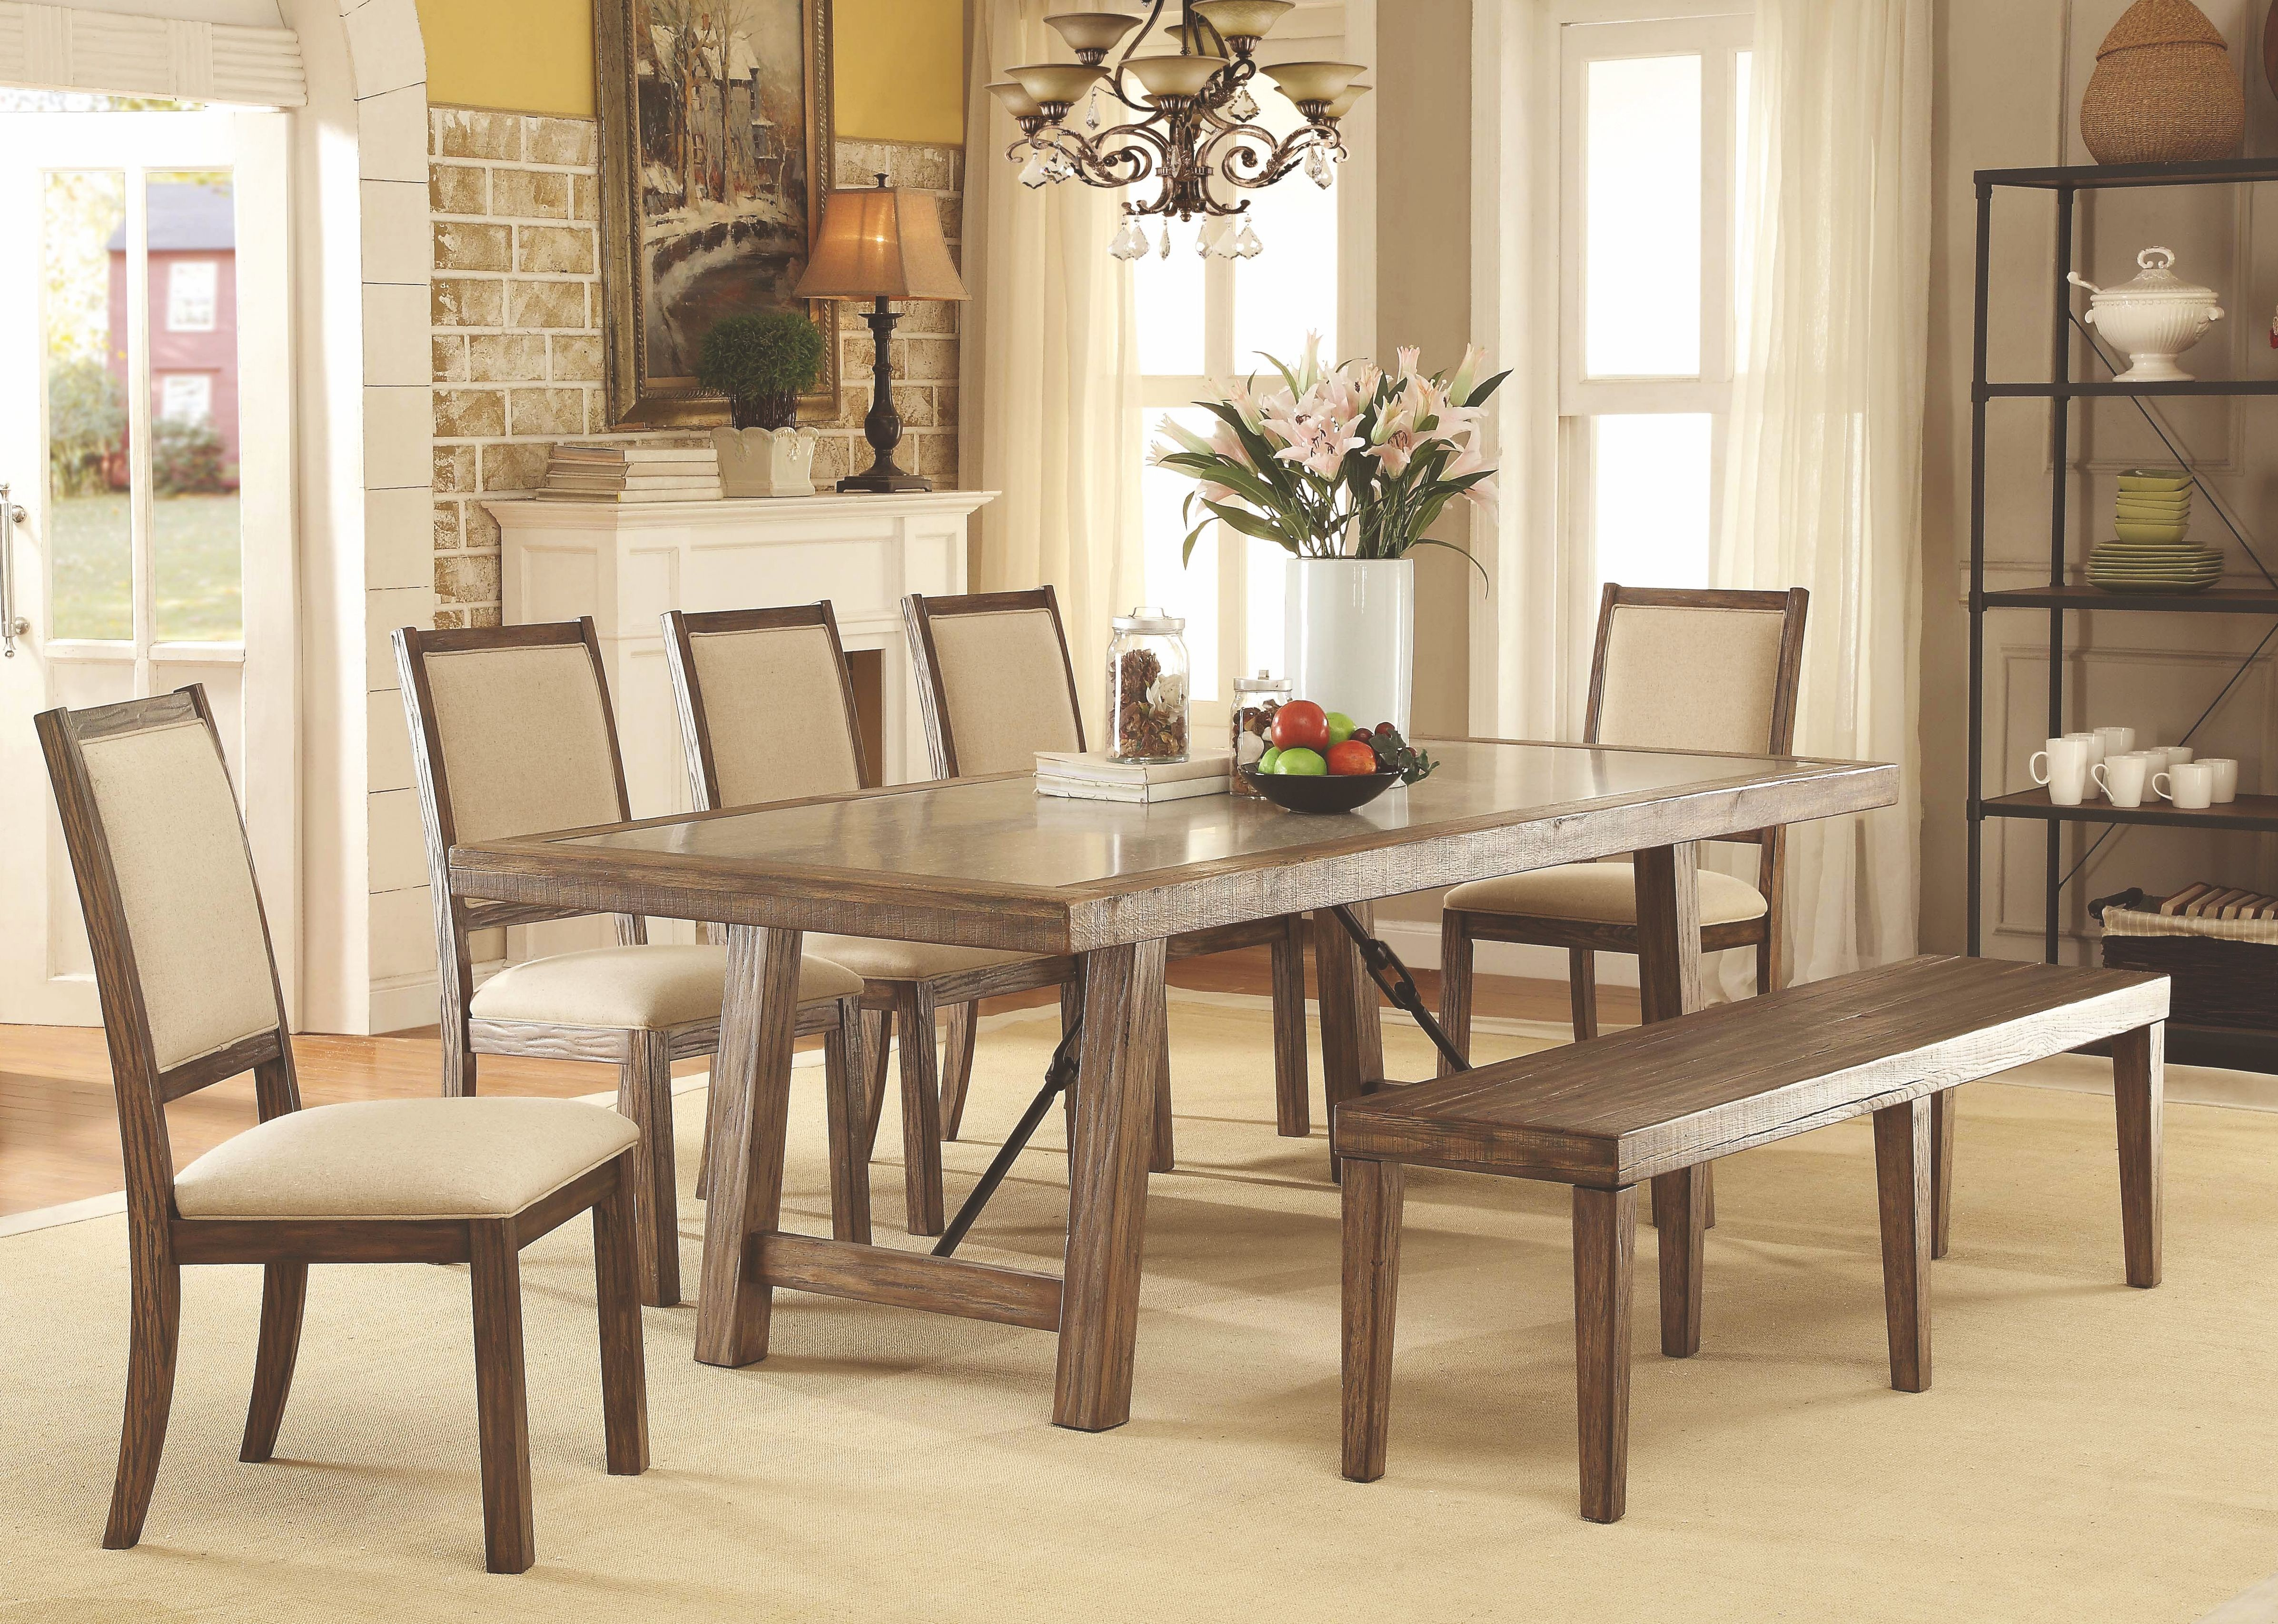 Dining Room Furniture Rustic Colettte Rustic Oak Rectangular Dining Room Set Cm3562t